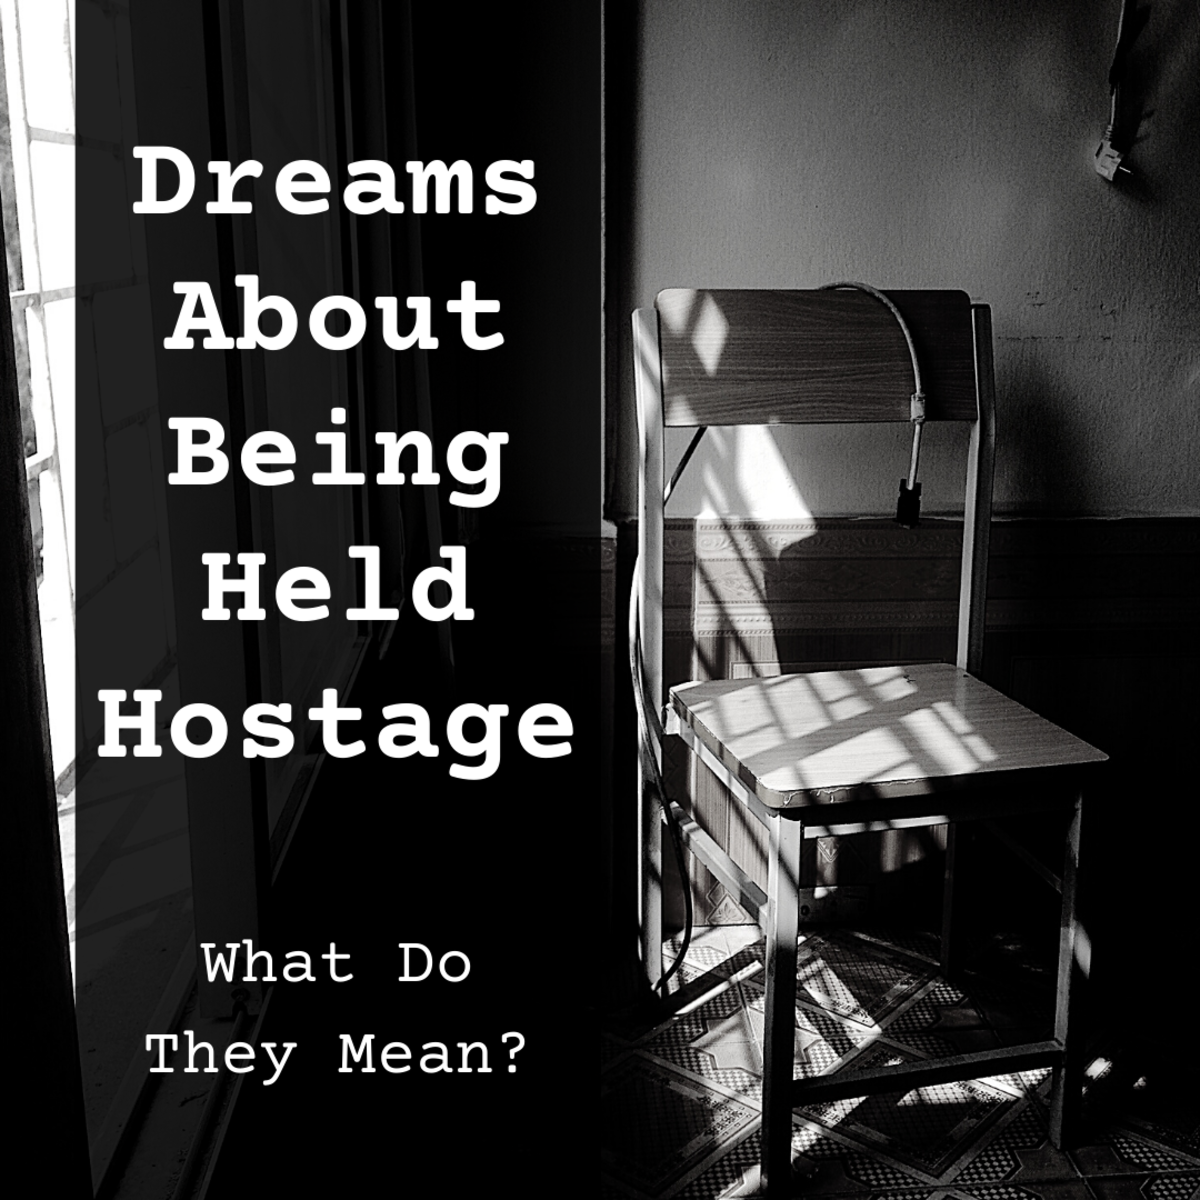 What Does It Mean If I Dream About Being a Hostage?